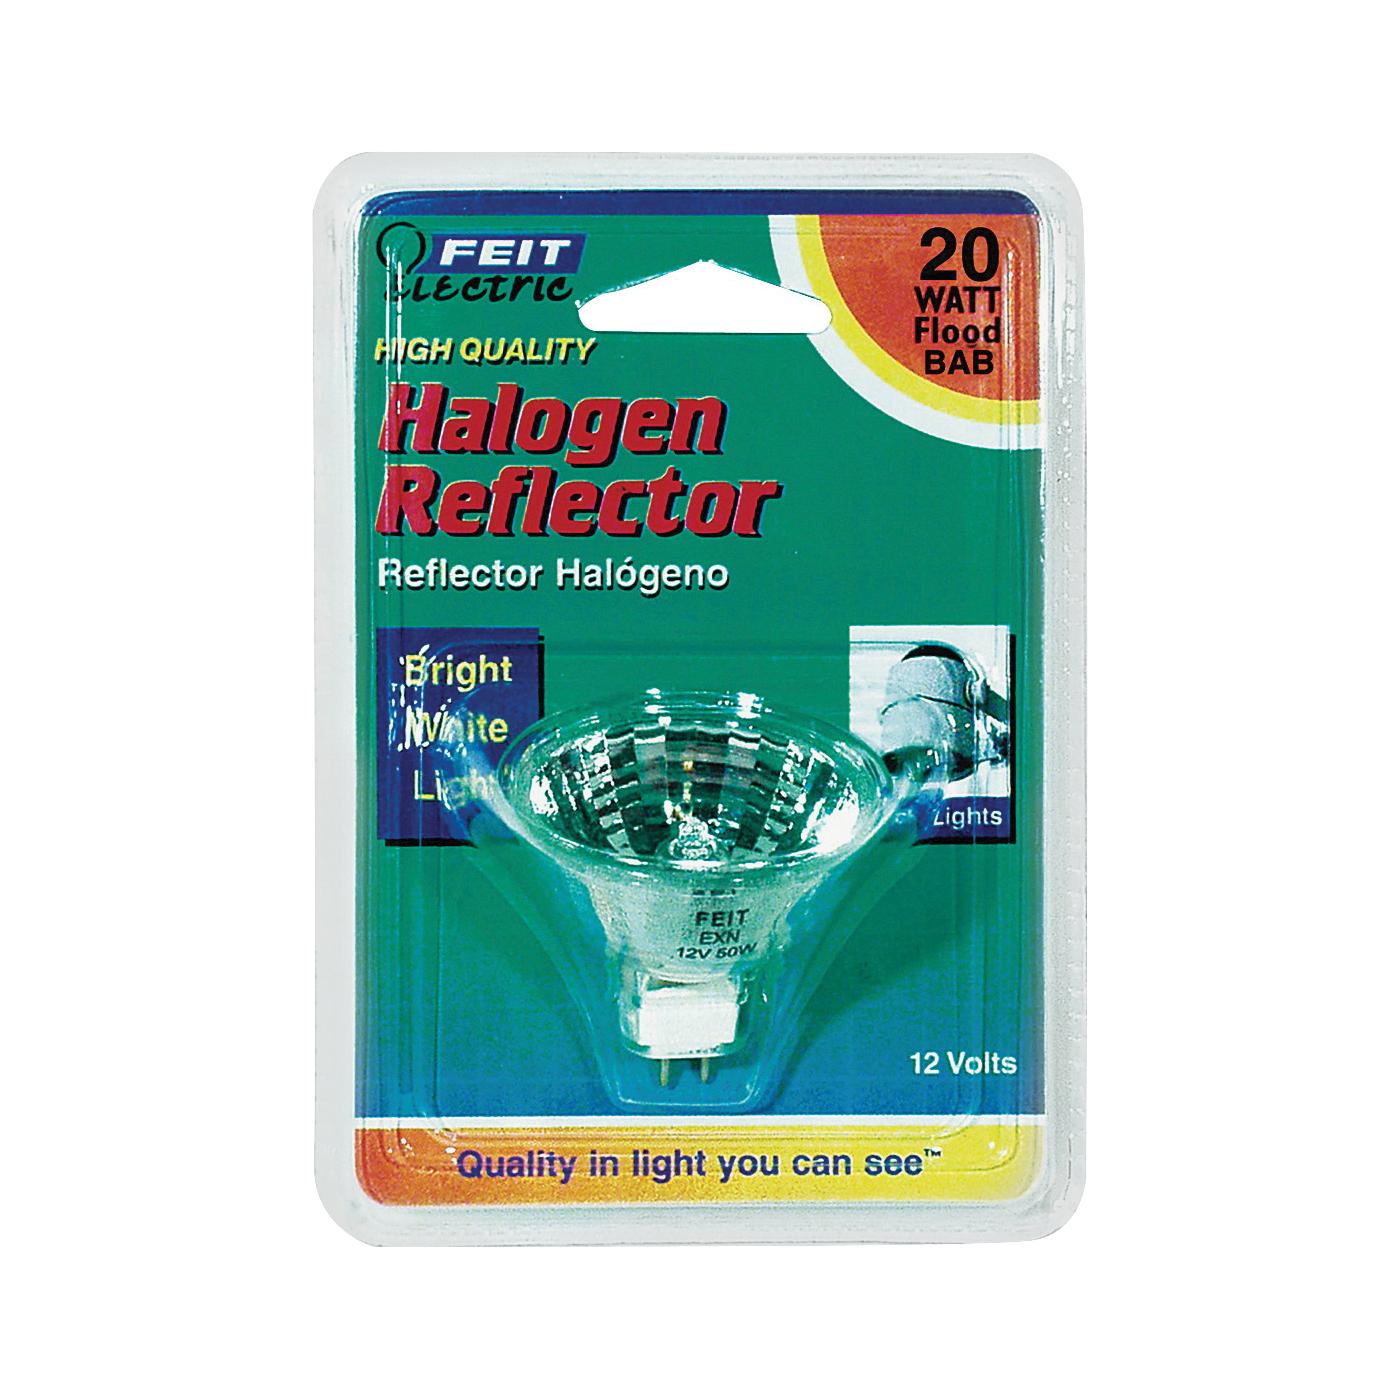 Picture of Feit Electric BPBAB Halogen Lamp, 20 W, GU5.3 Lamp Base, MR16 Lamp, 3000 K Color Temp, 3000 hr Average Life